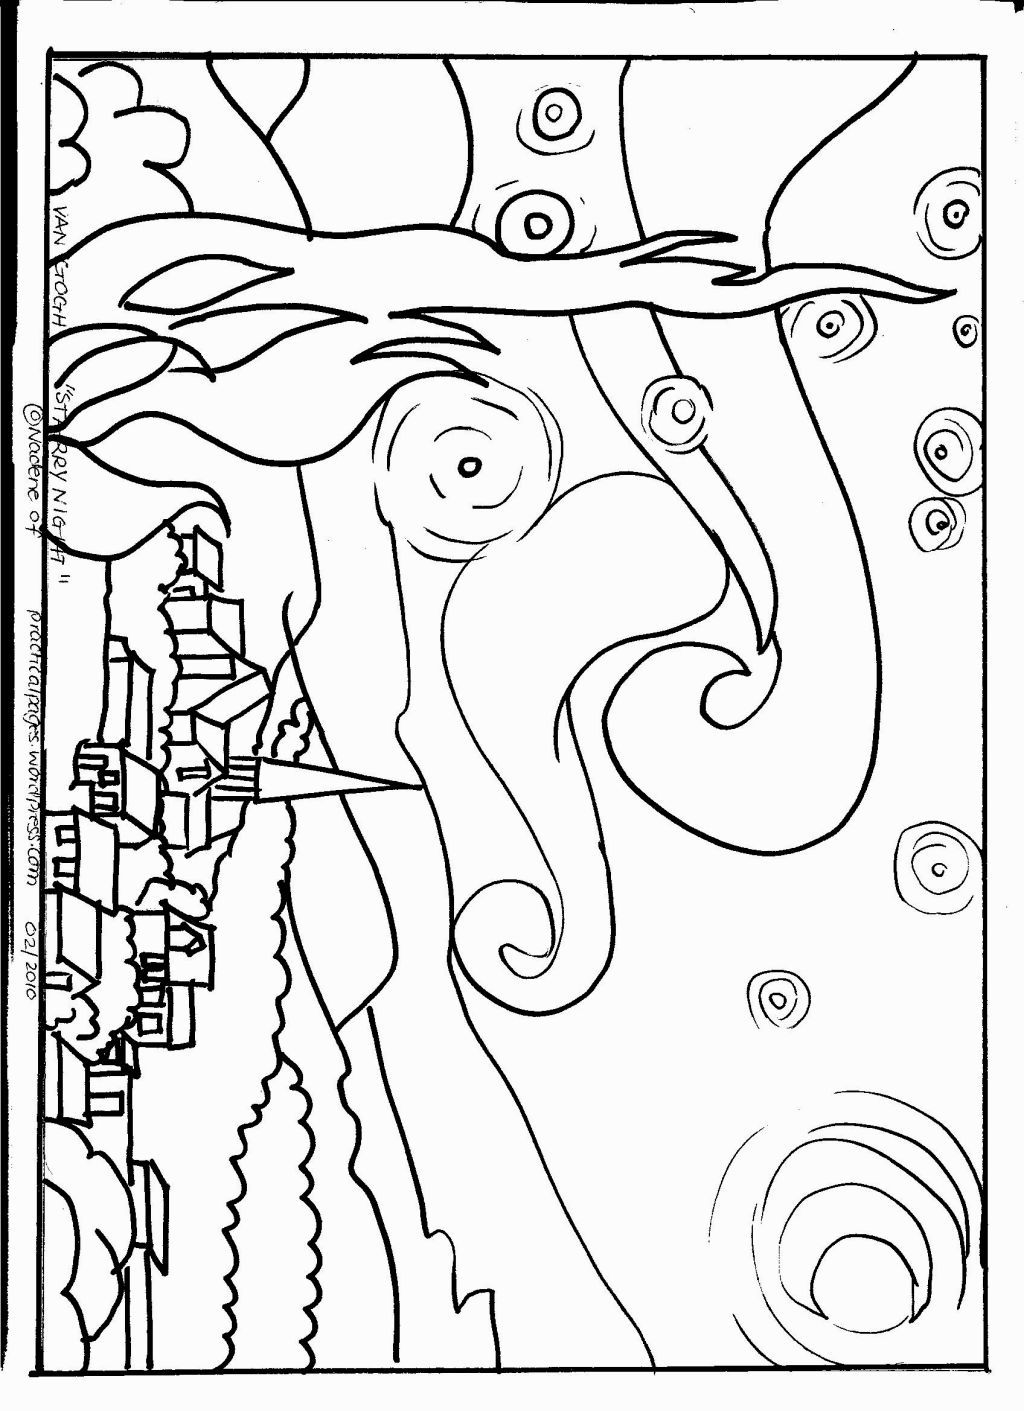 famous painting coloring pages famous painters and paintings coloring pages painting pages famous coloring